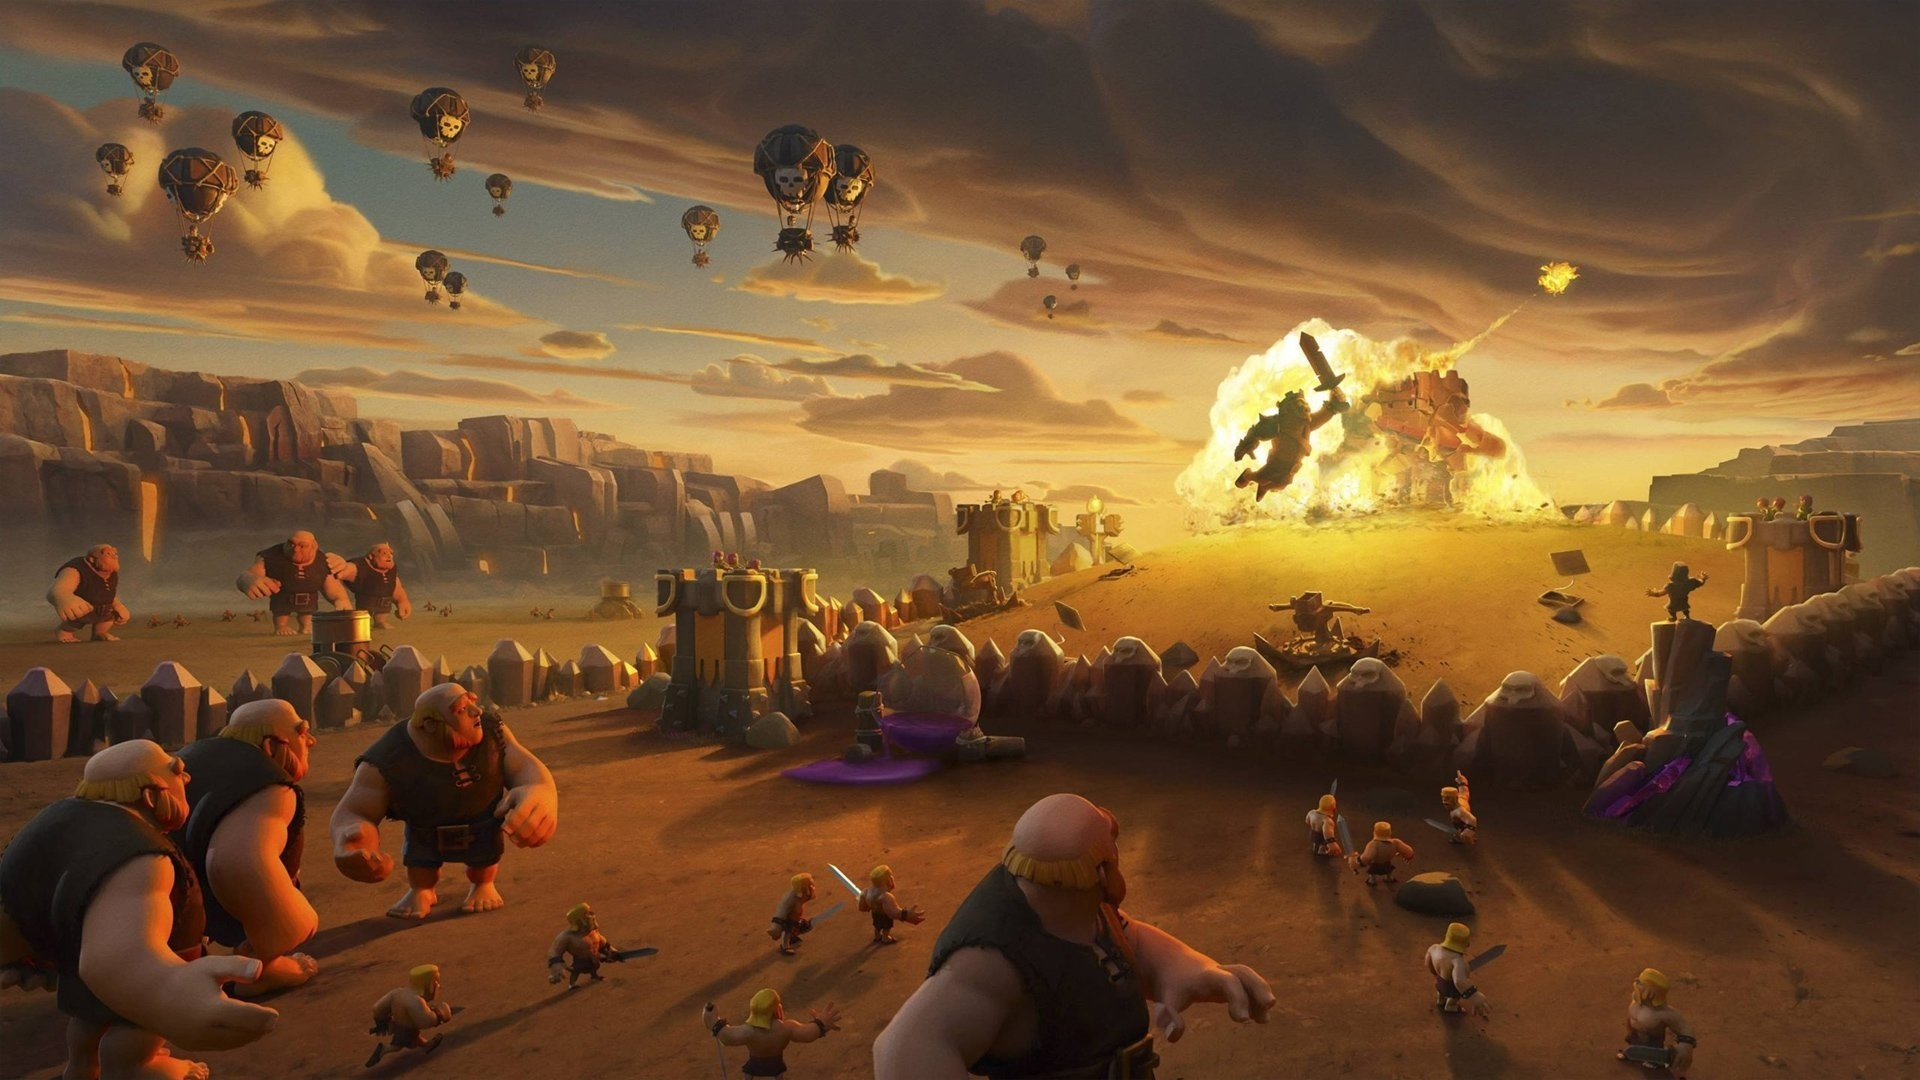 Clash Of Clans free background